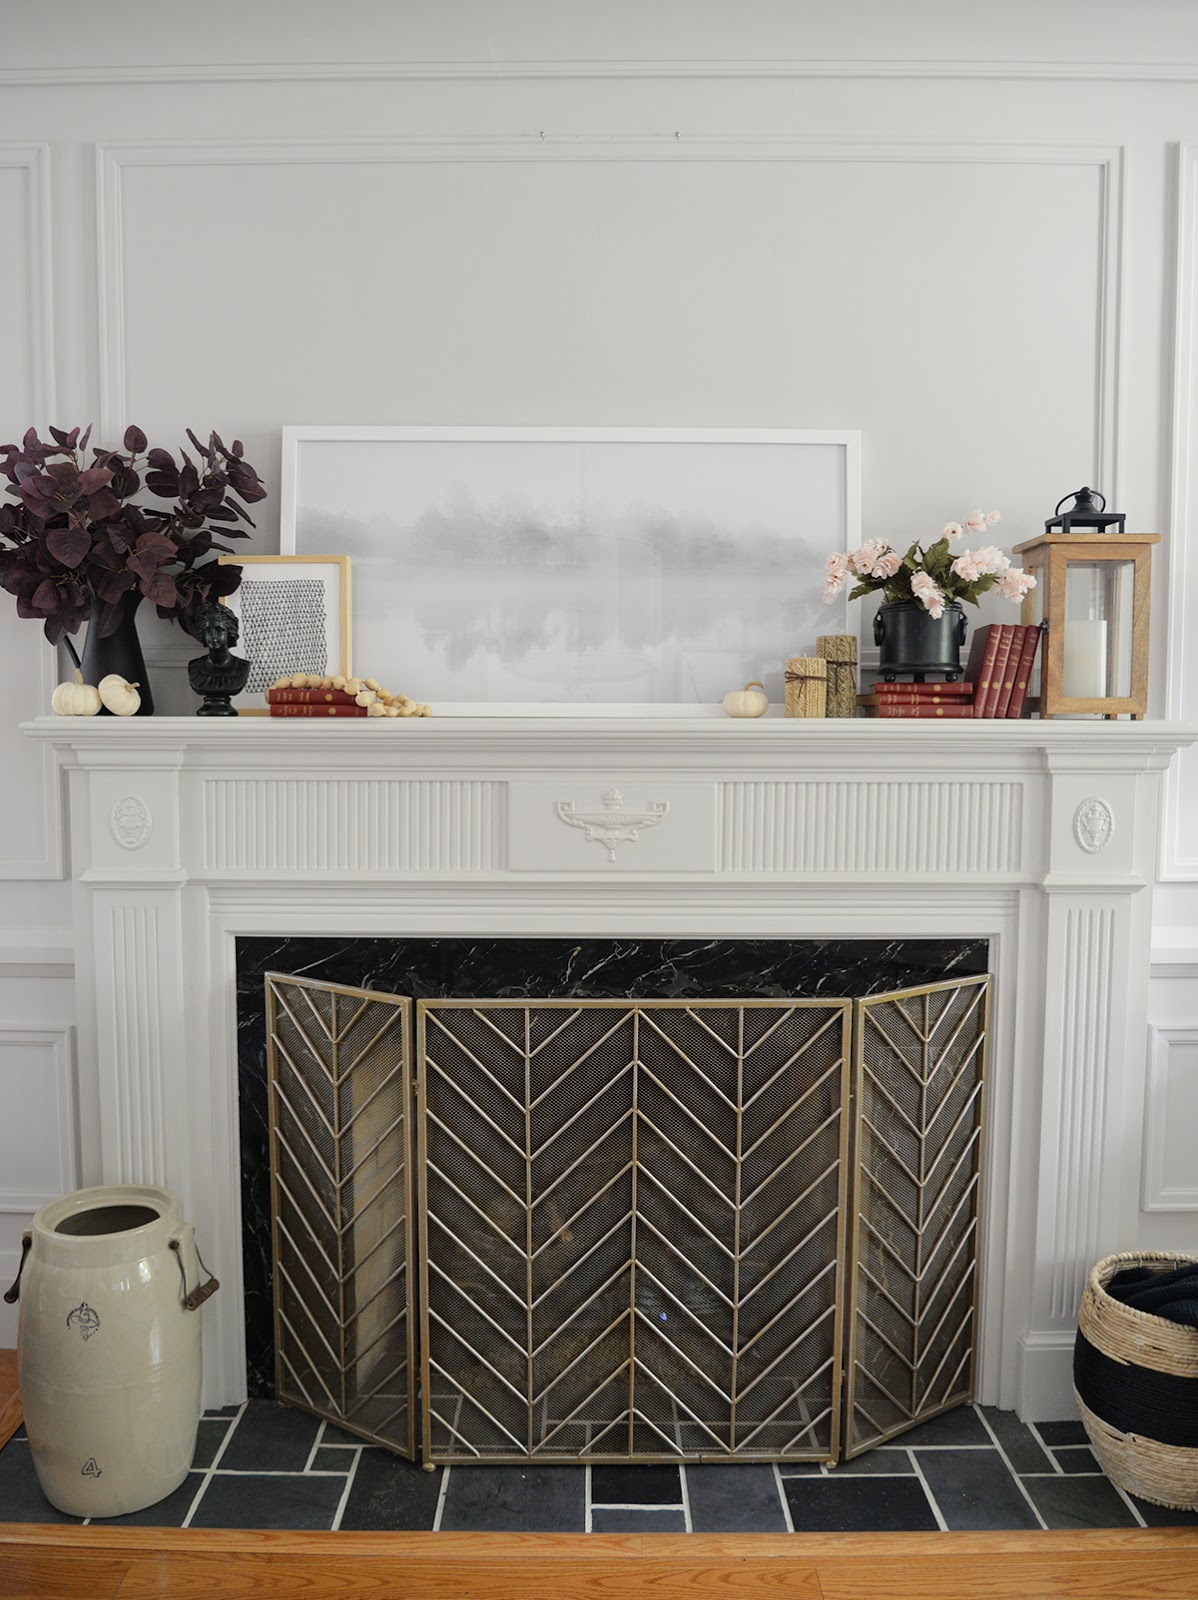 fireplace decor, fireplace mantel ideas, fall decorating ideas